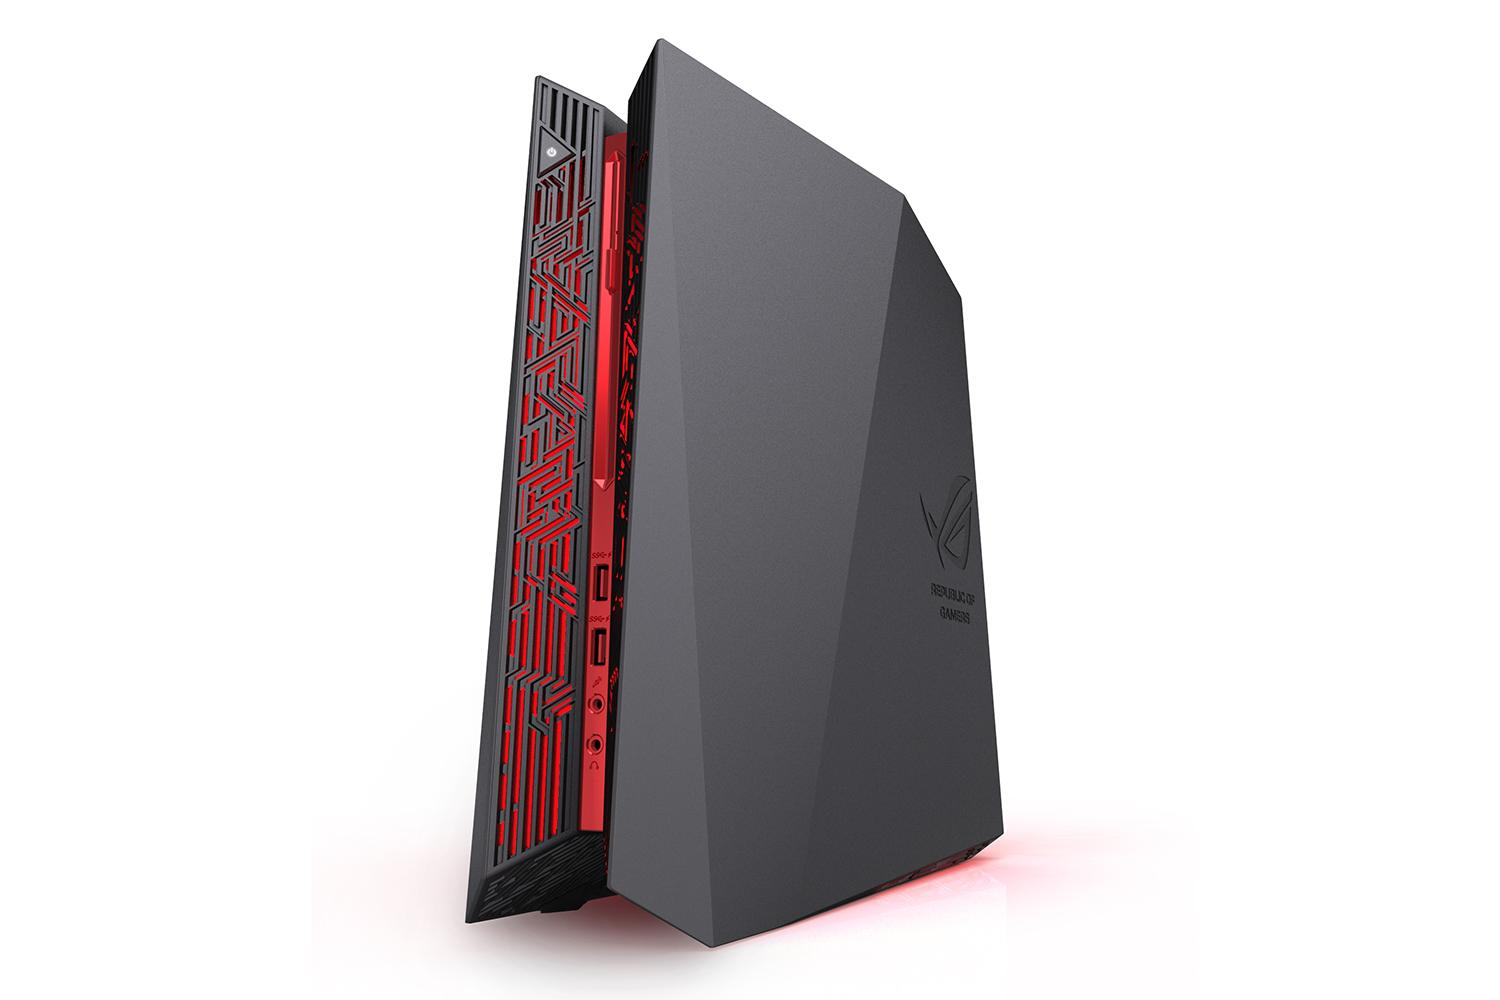 Asus-ROG-G20-tower (deleted eca5bc34397fb5976b9f50cd97a8ff16)